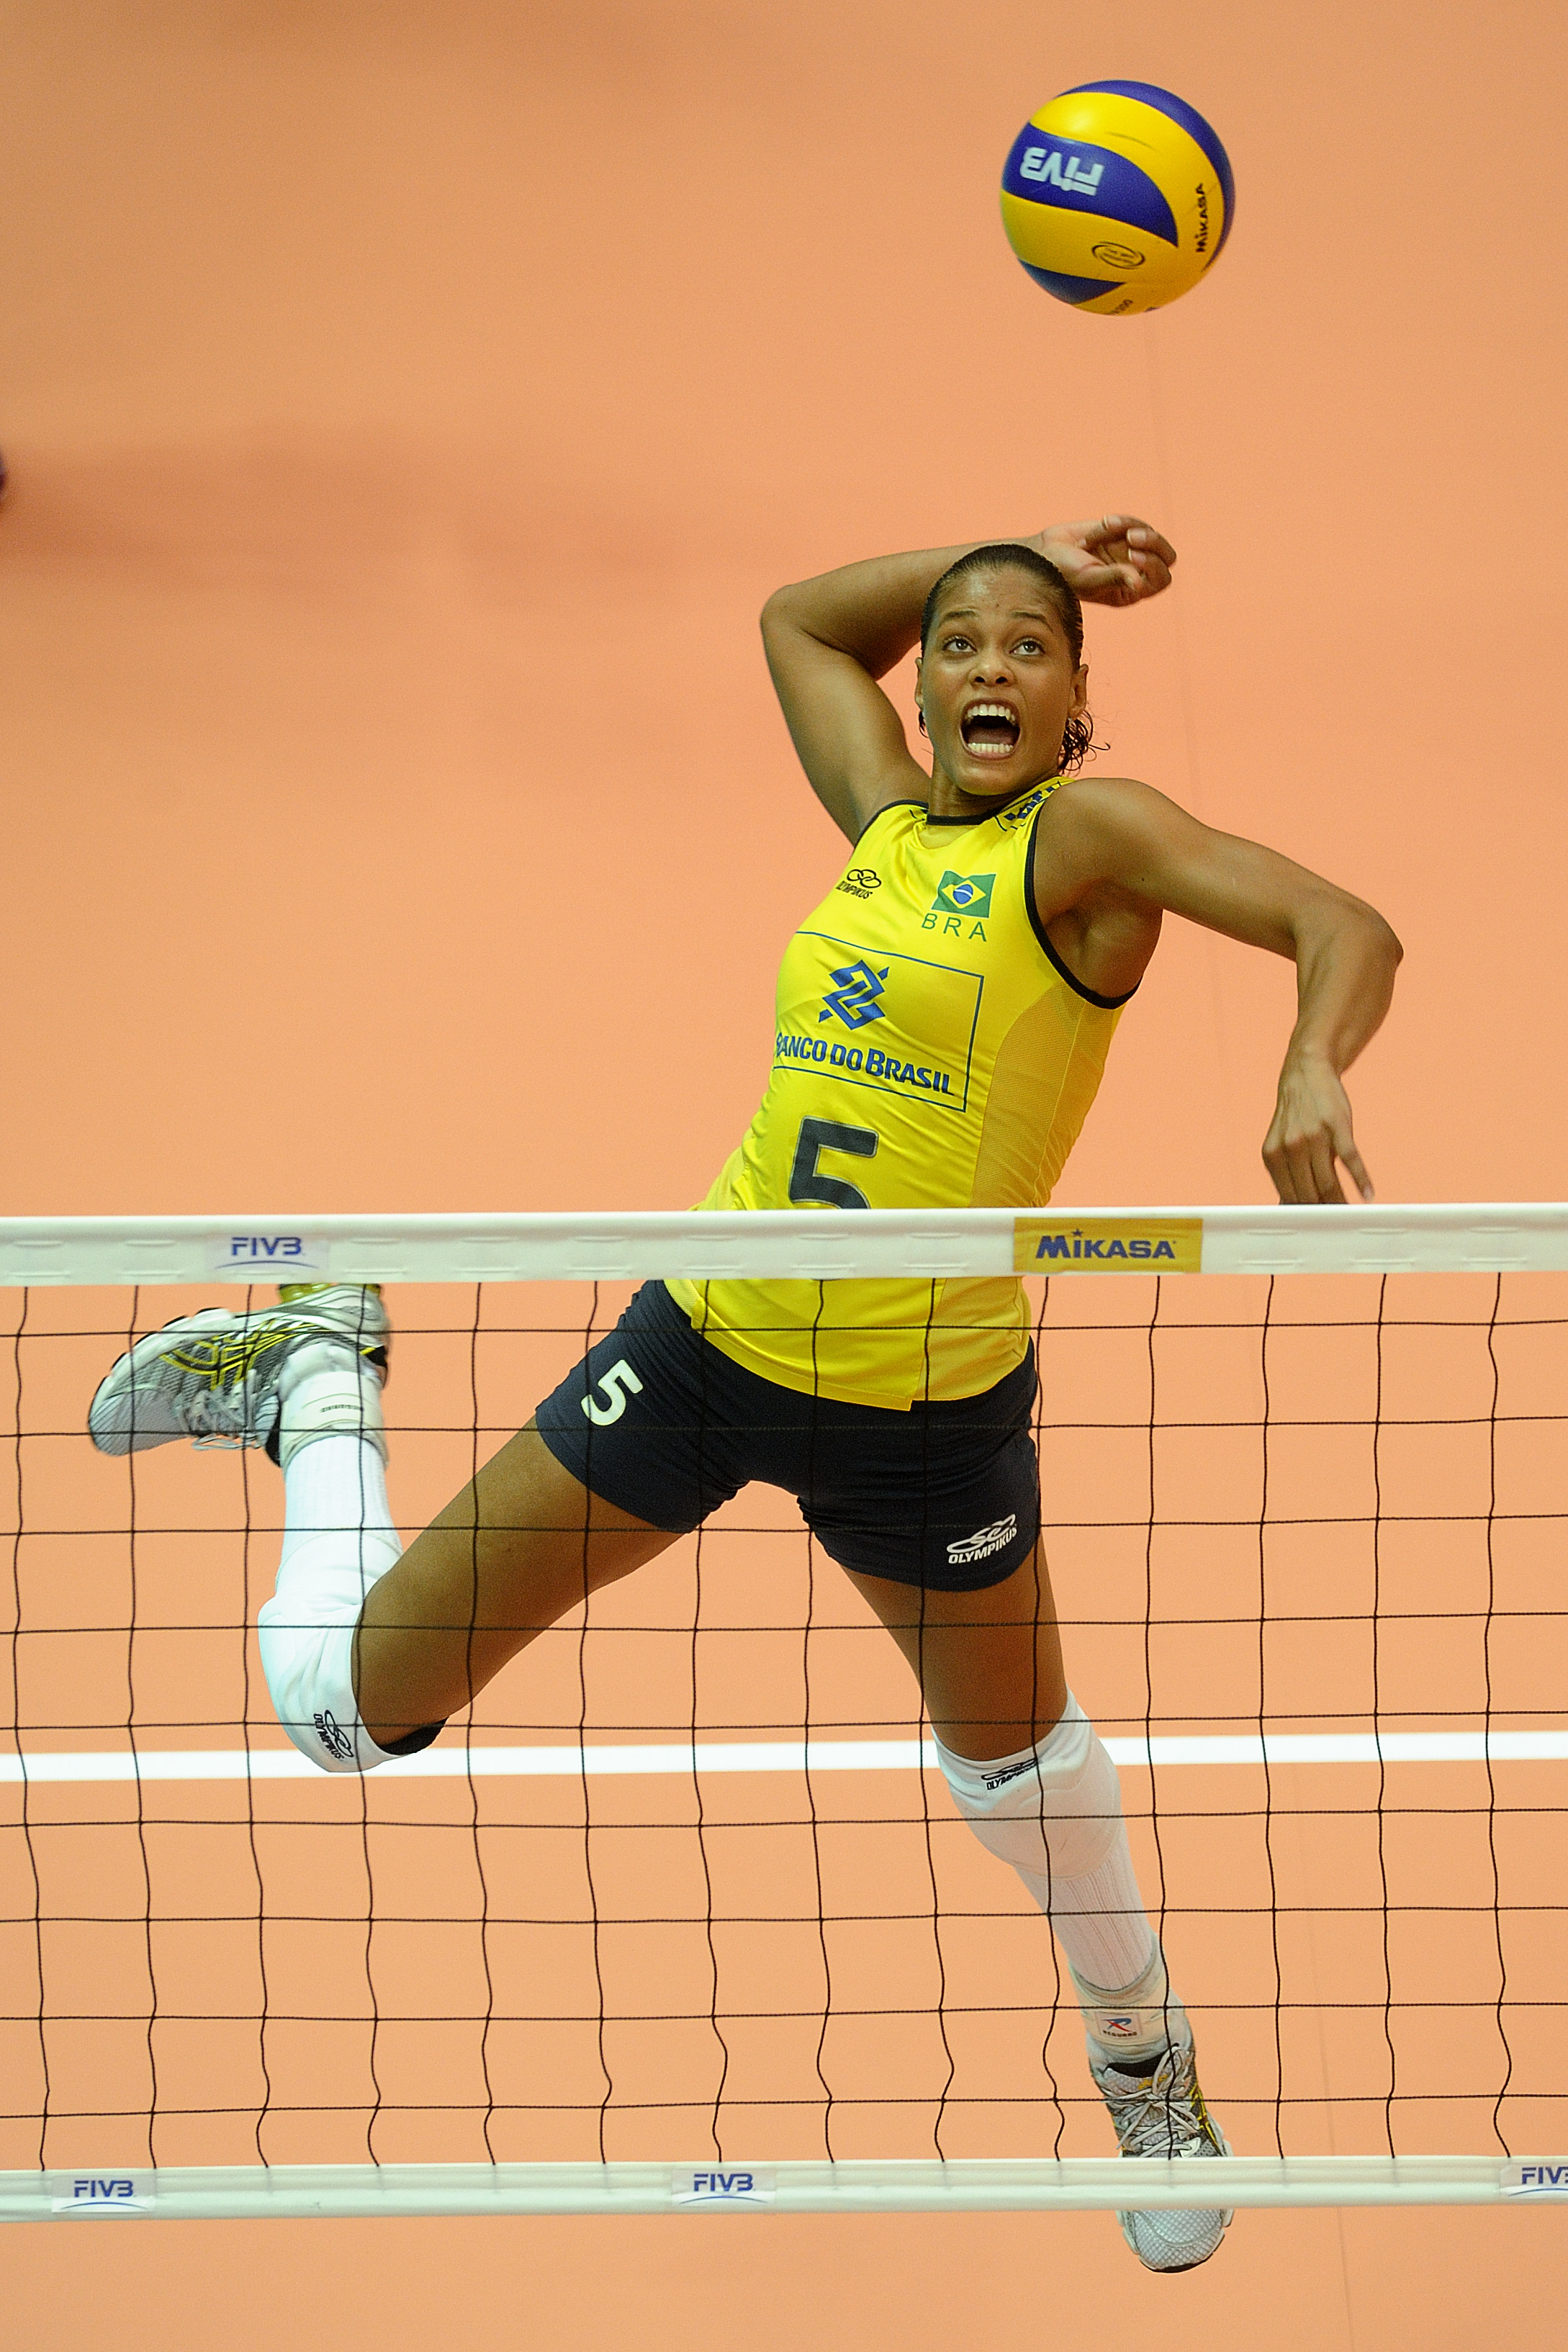 Adenizia Silva three meters attack